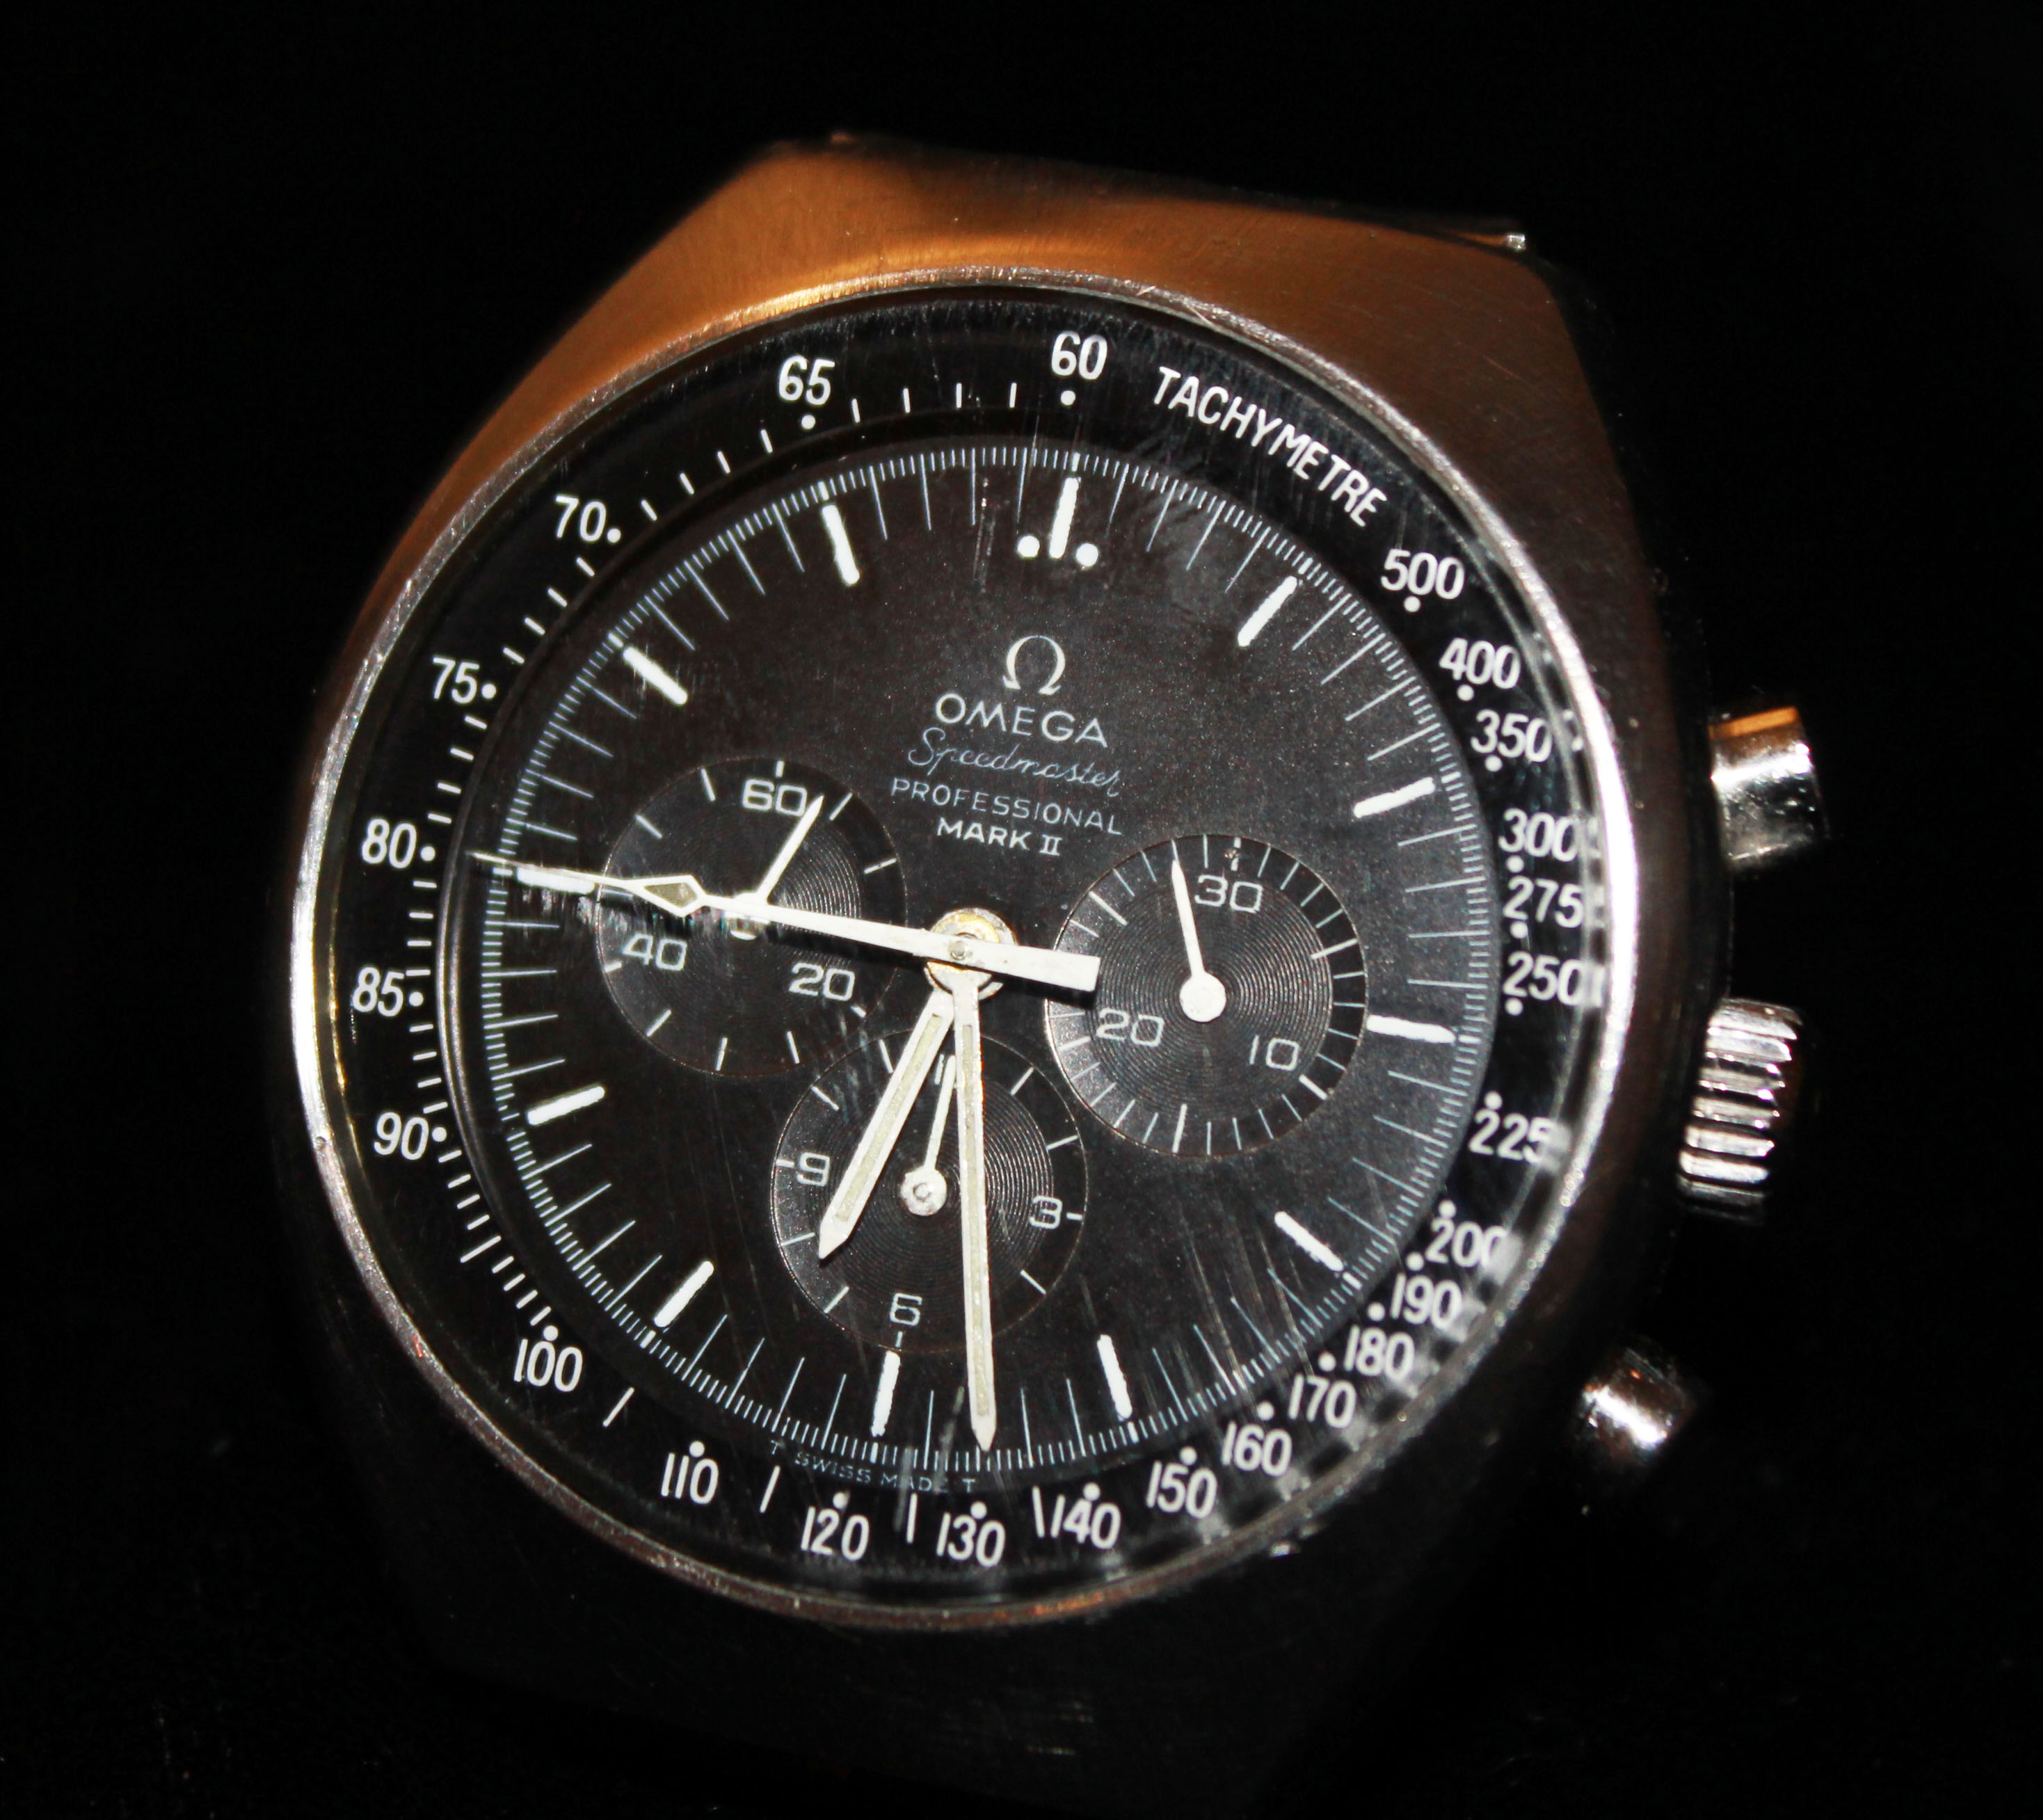 Lot 31 - OMEGA, SPEEDMASTER, PROFESSIONAL MARK 2, A VINTAGE STAINLESS STEEL GENT'S WRISTWATCH having a